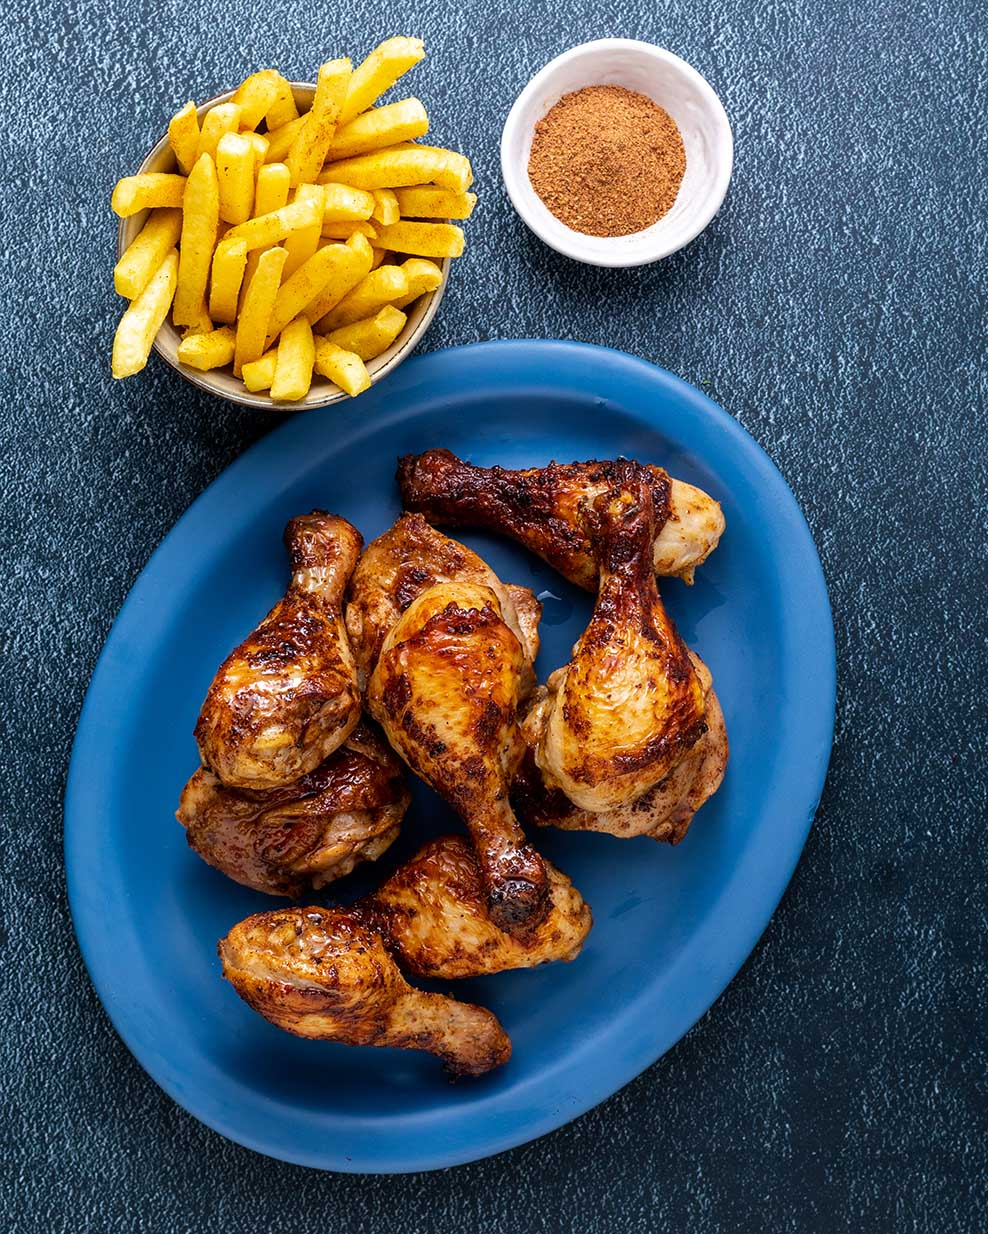 Grilled Chicken pieces and Chips